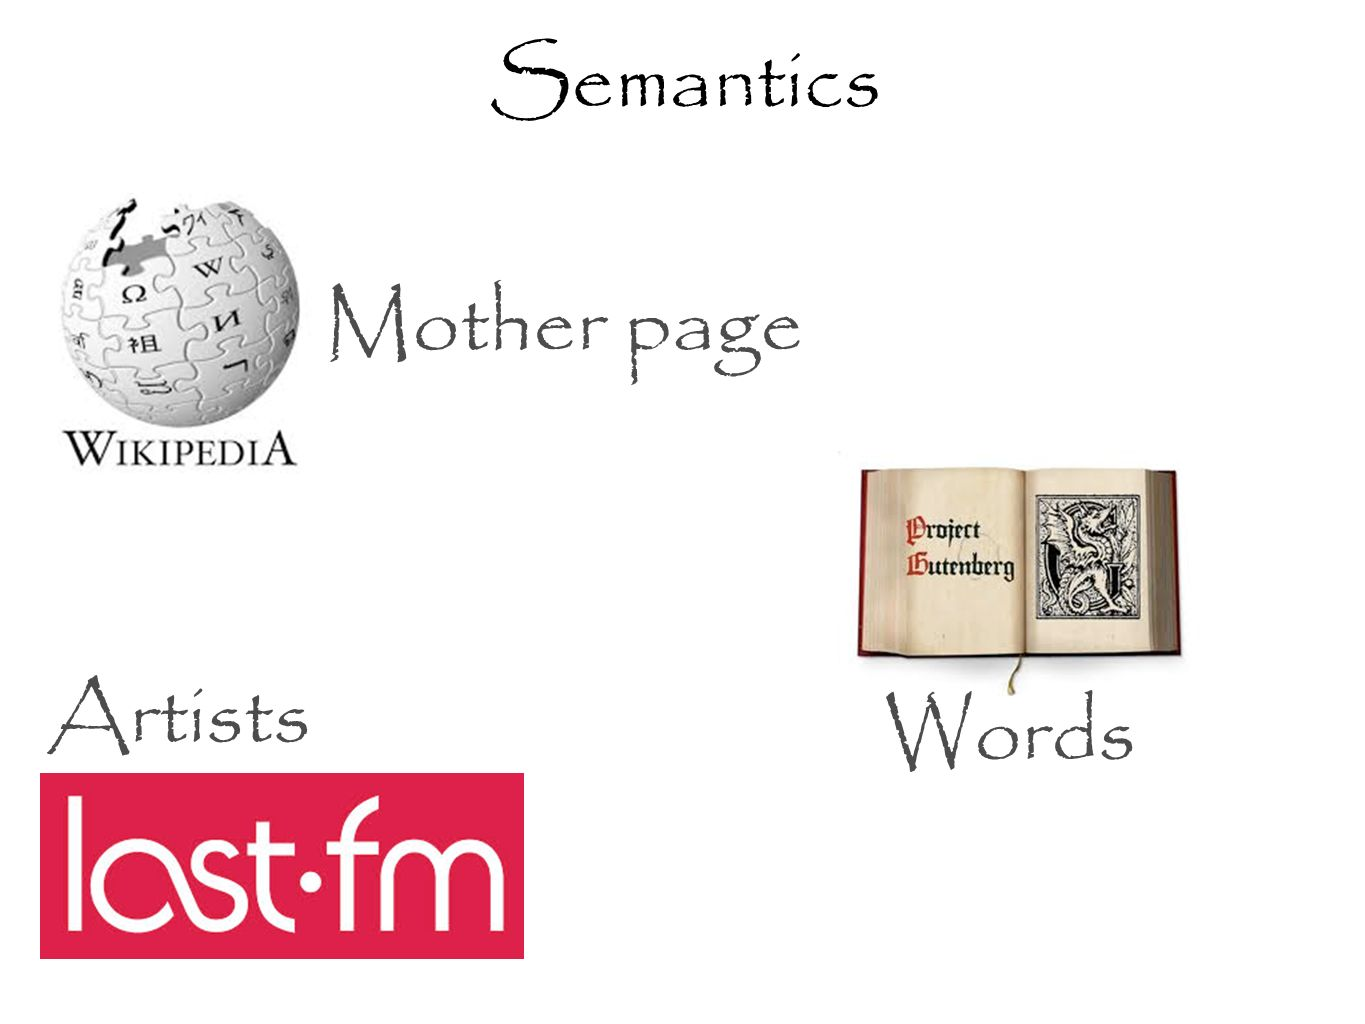 Semantics Artists Mother page Words